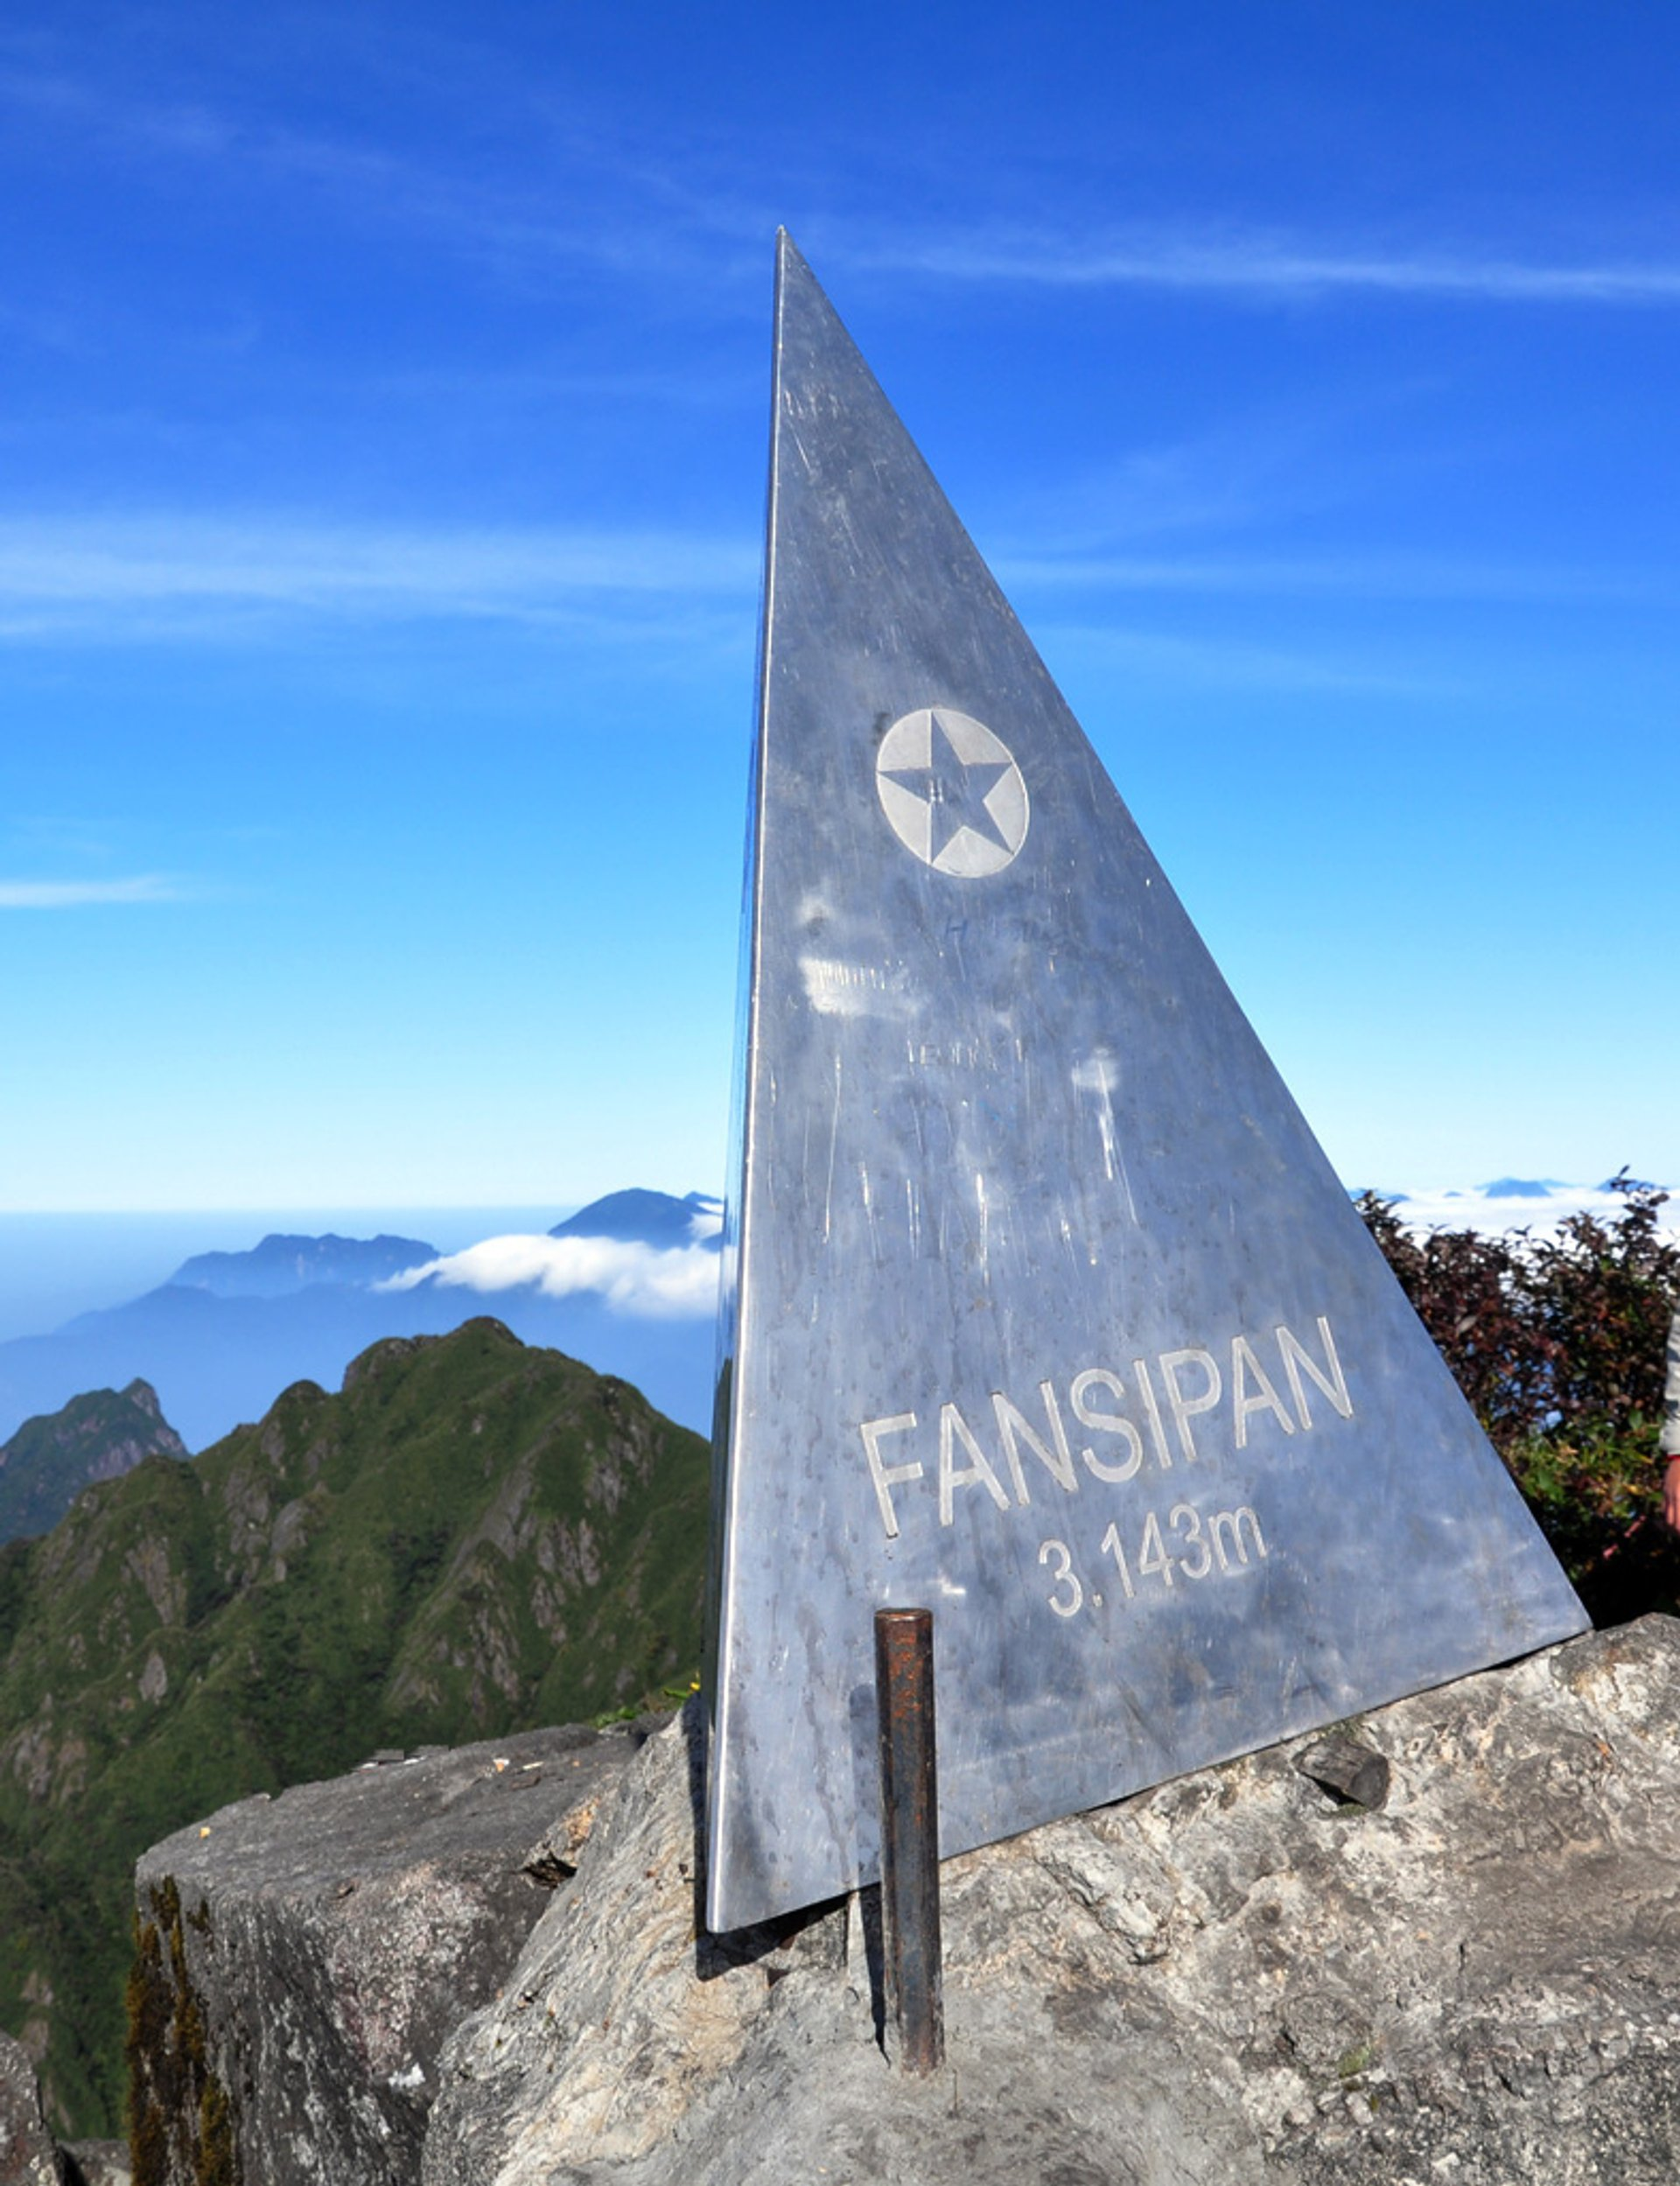 Best time for Conquering Fansipan in Vietnam 2020